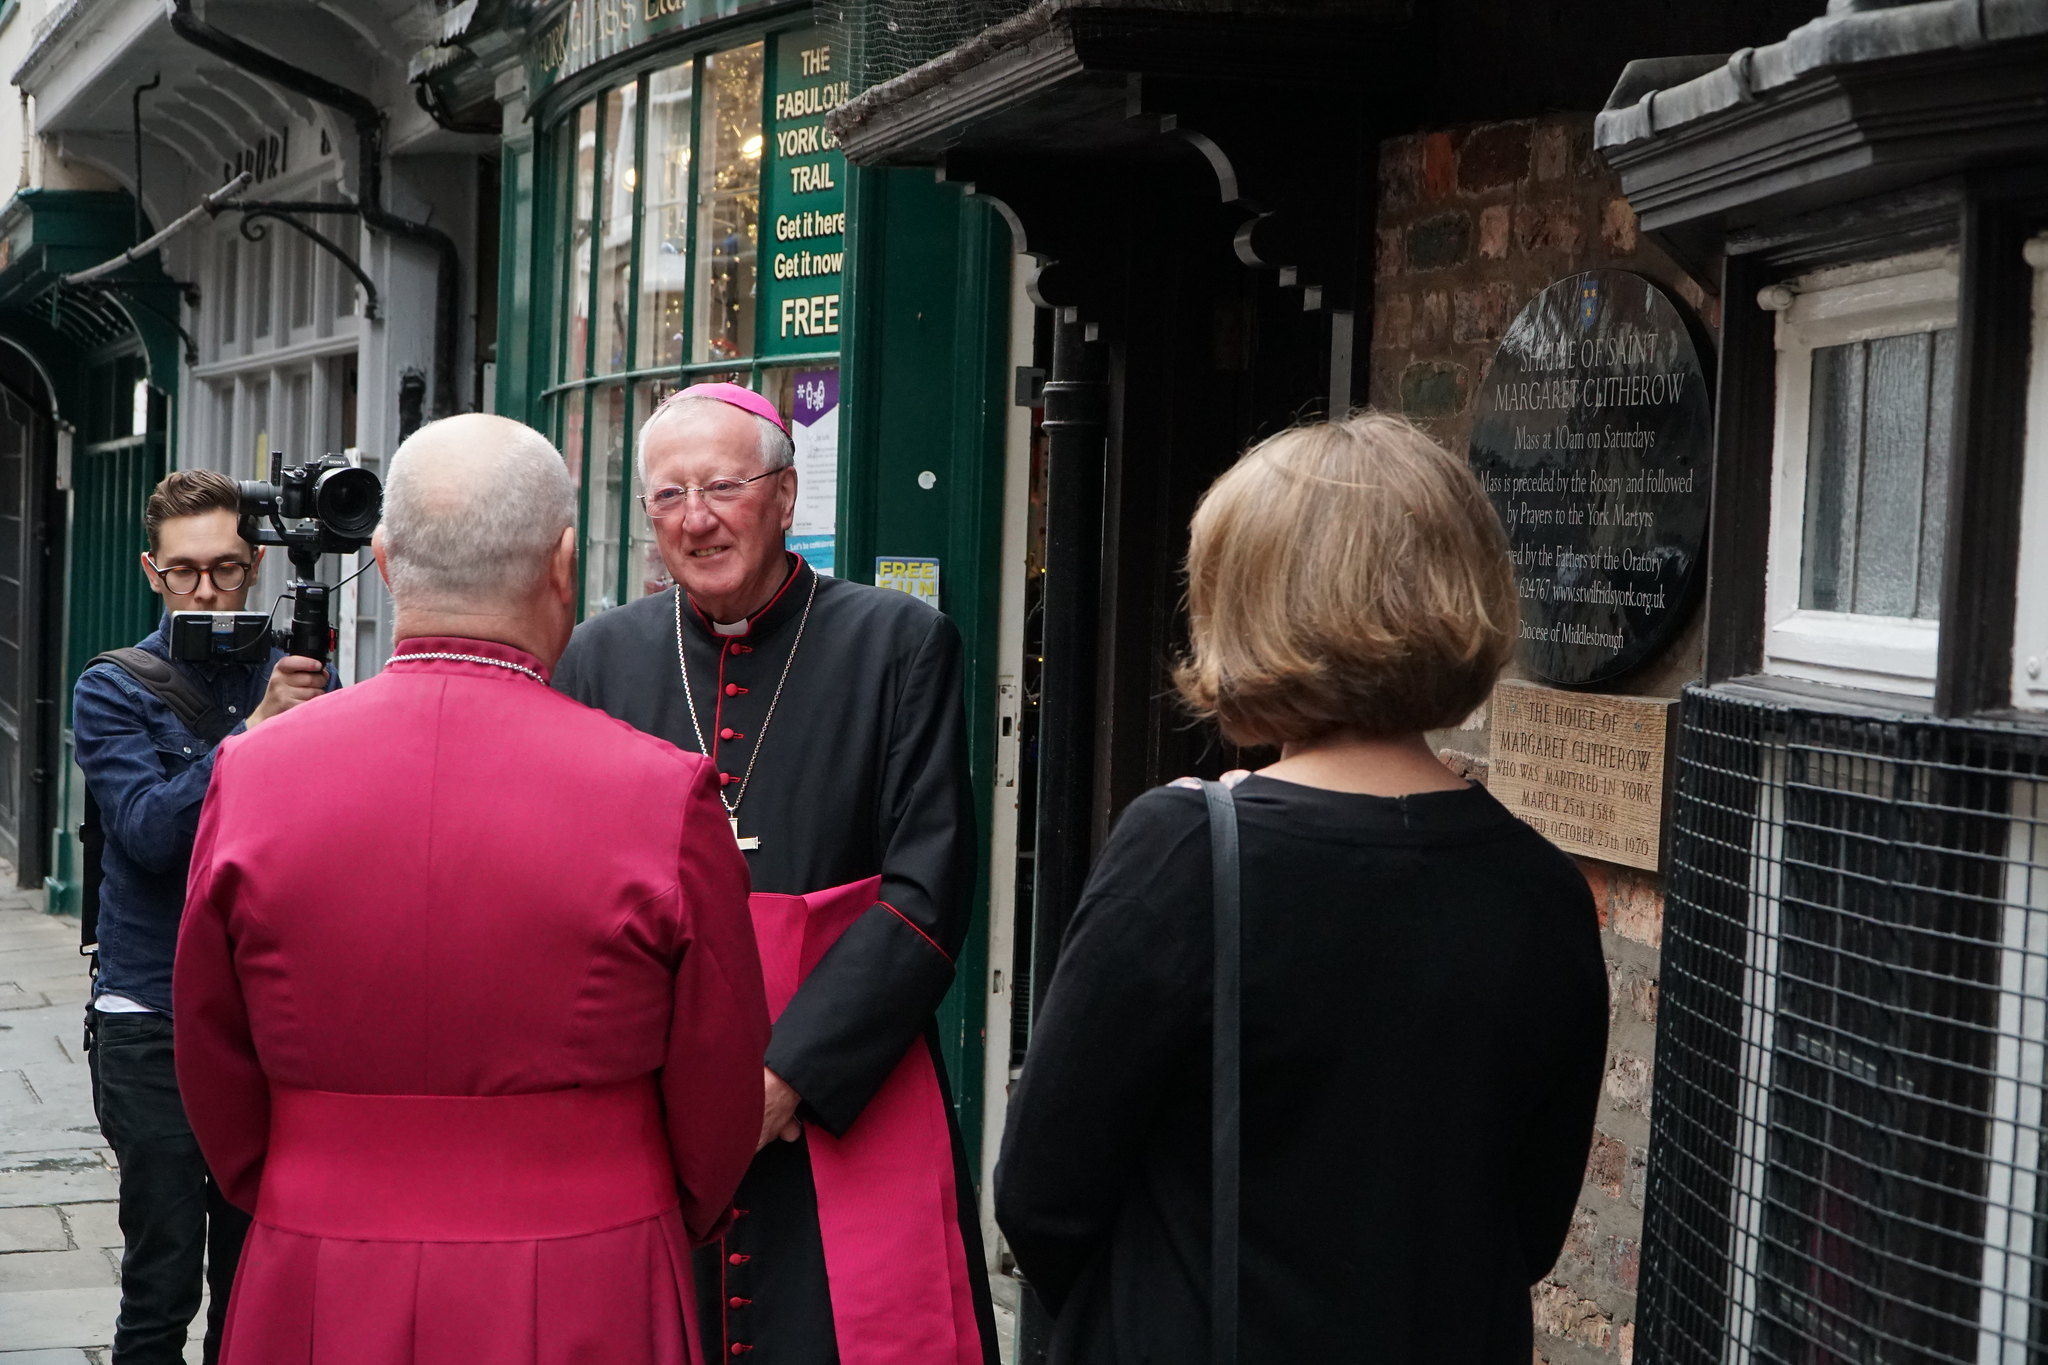 Bishop Terry welcomes newly elected 98th Archbishop of York Stephen Cottrell to pray alongside him in the shrine of St Margaret Clitherow – Picture by Duncan Lomax, Ravage Productions